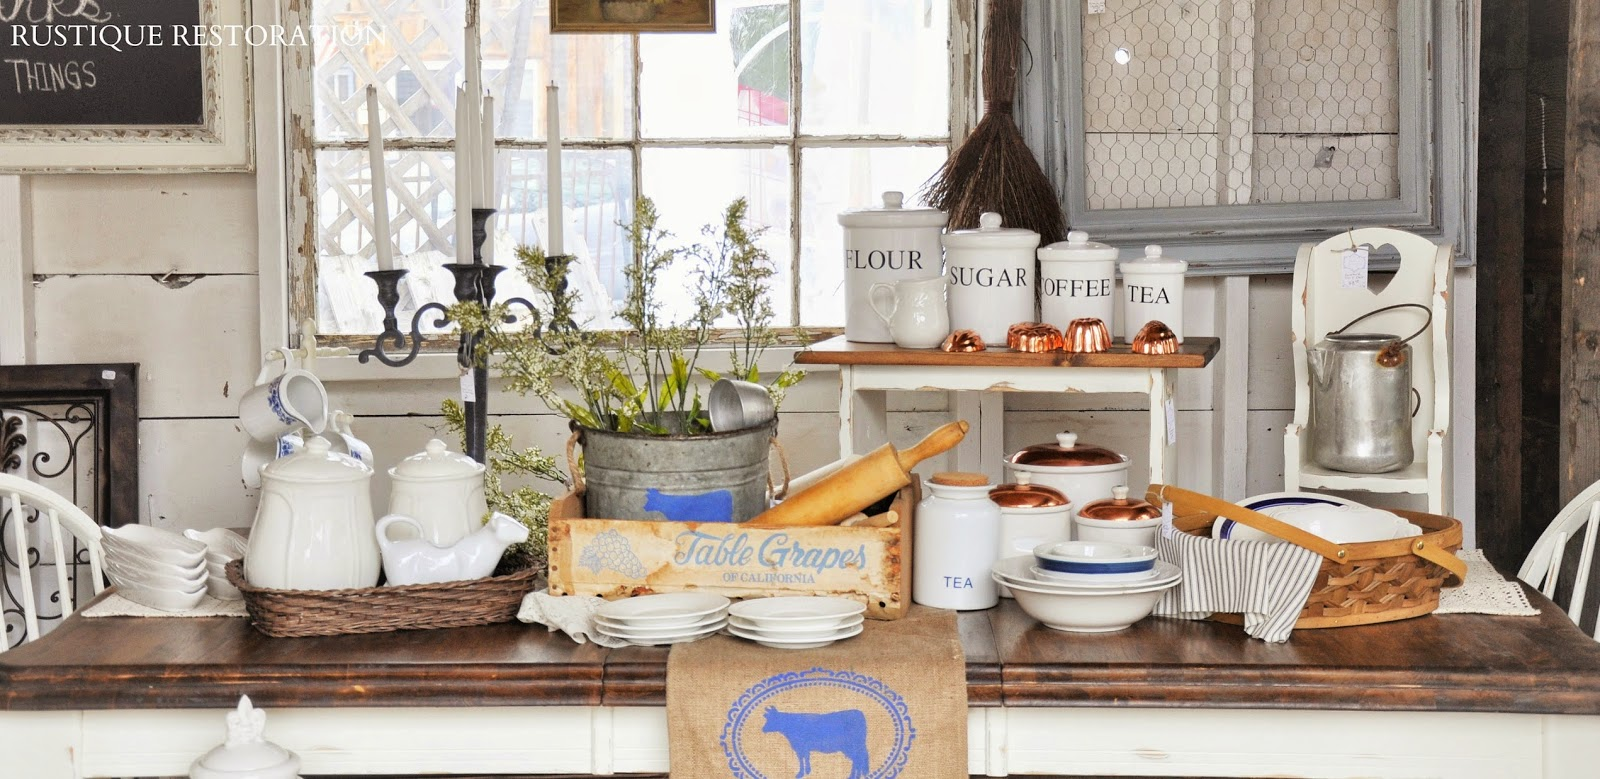 Rustique Restoration: French Country Farmhouse Table And Decor